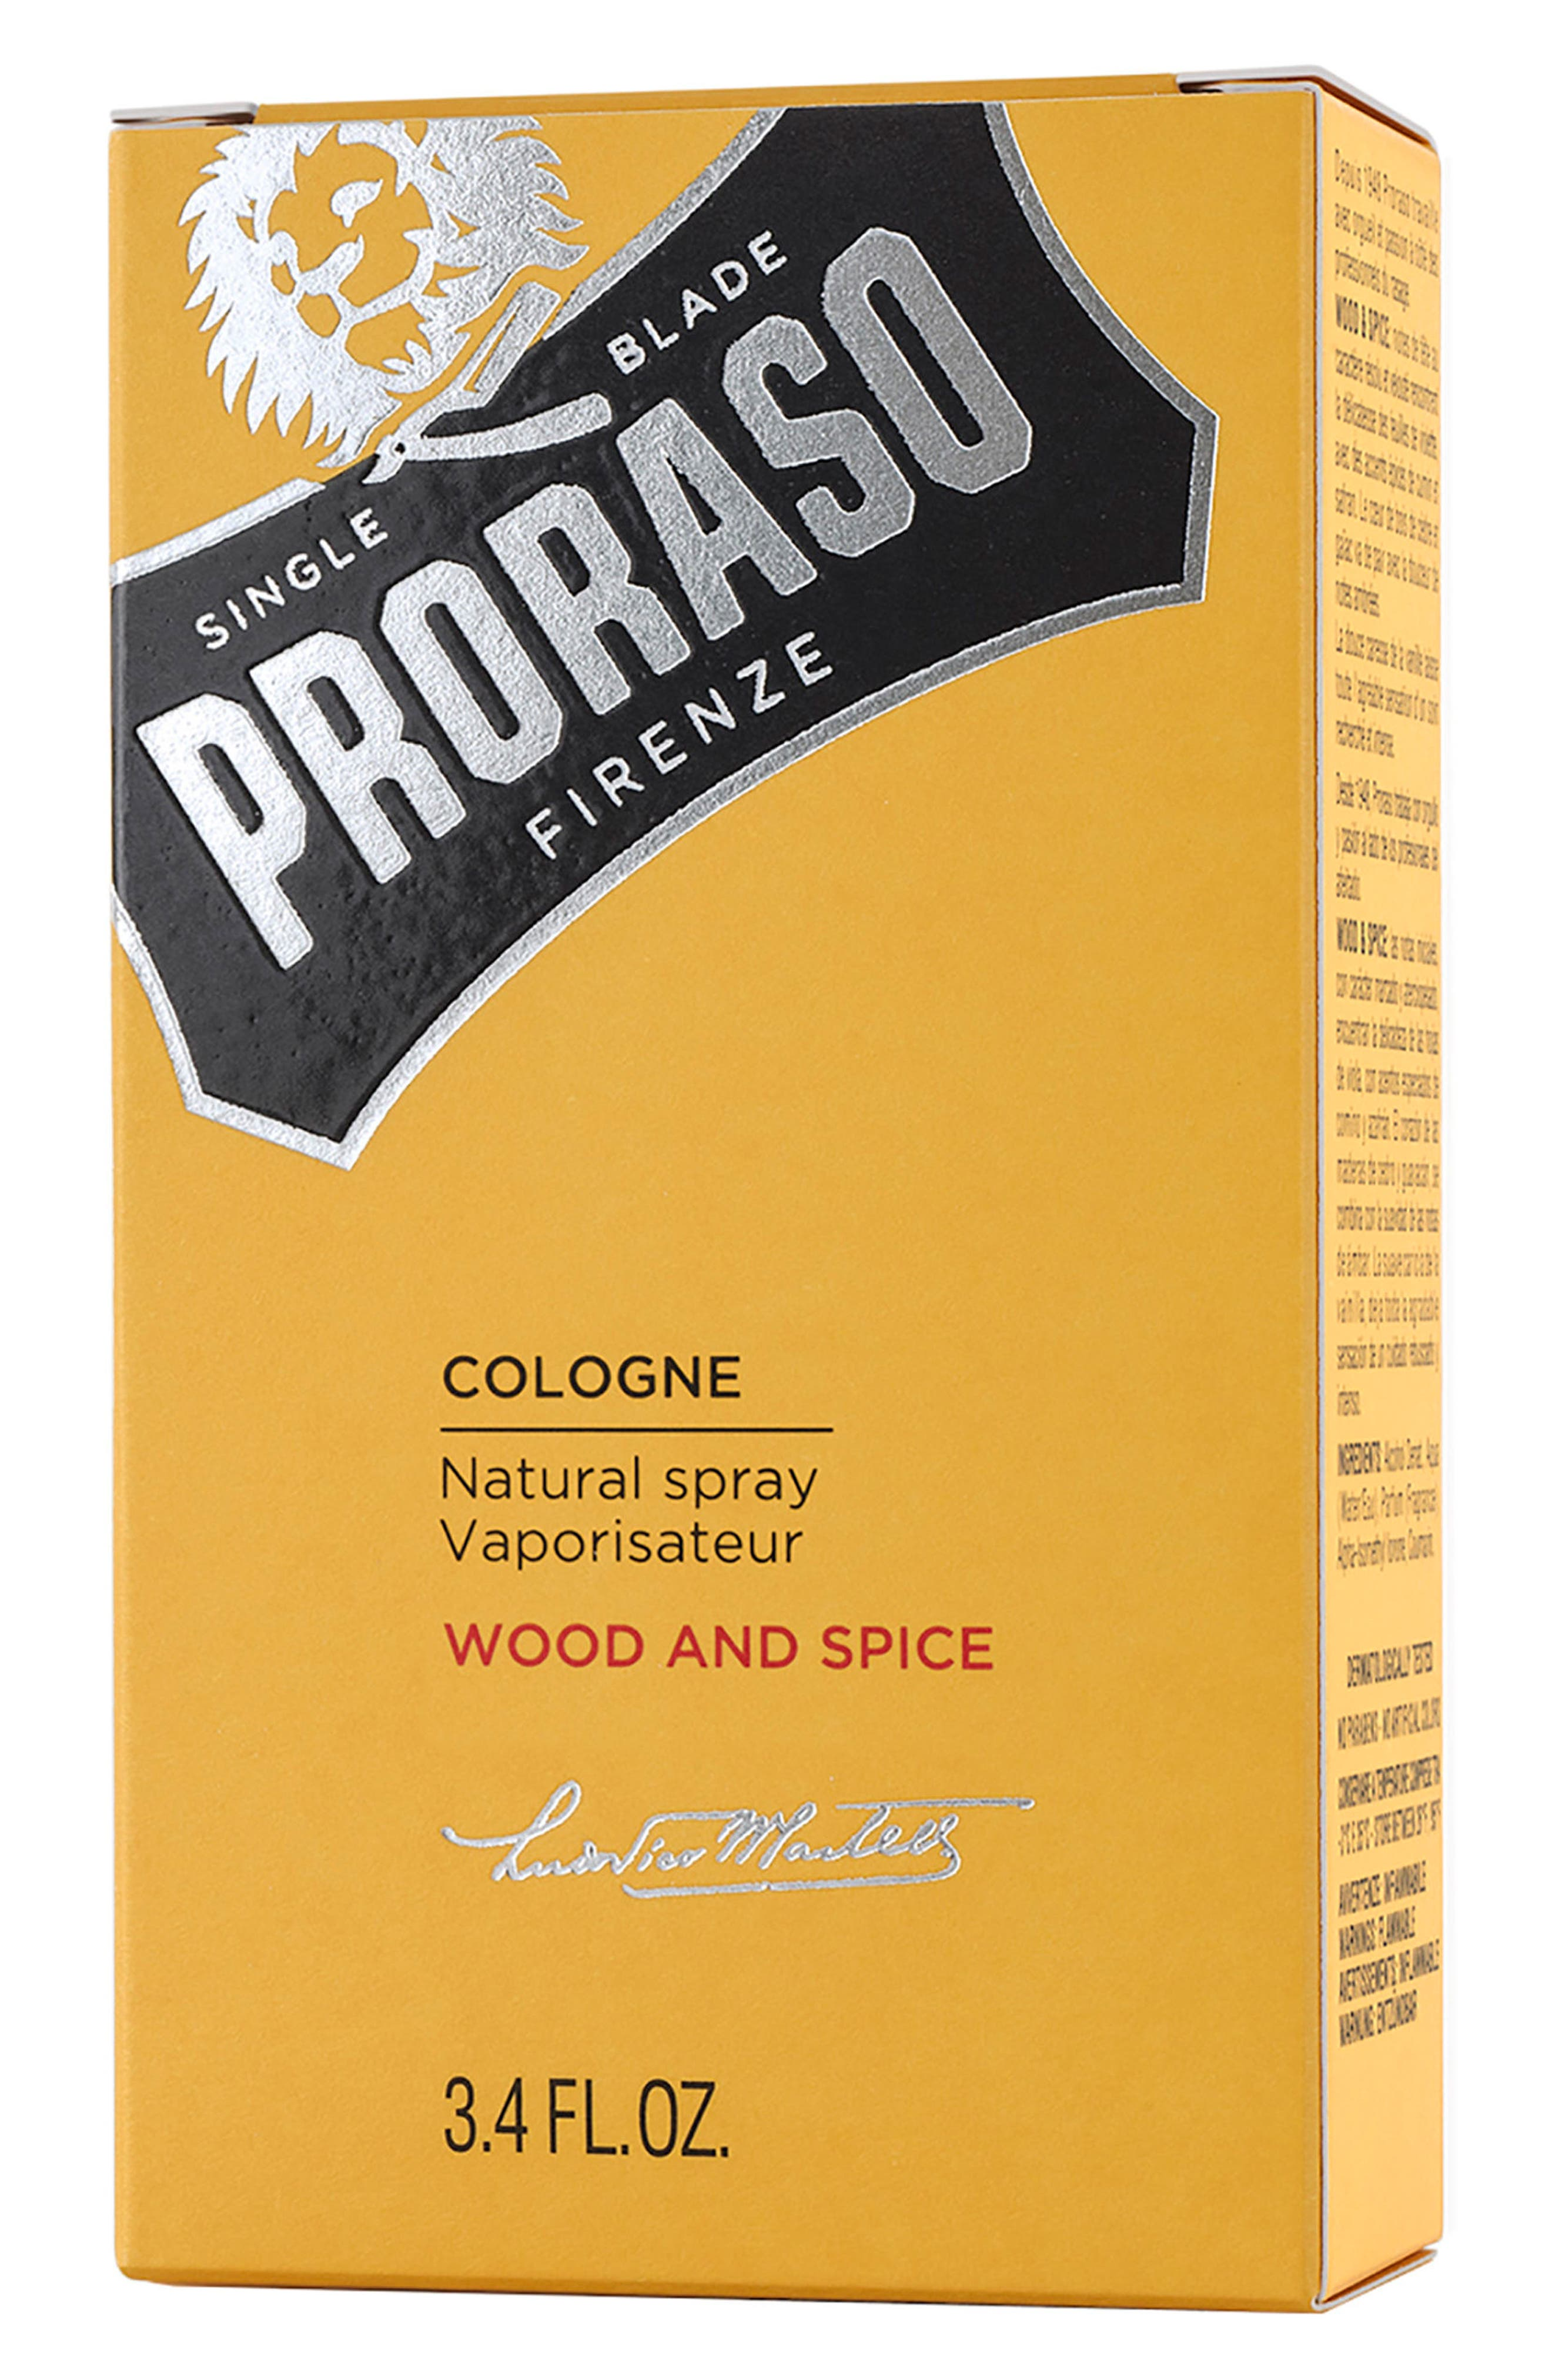 PRORASO,                             Men's Grooming Wood and Spice Cologne,                             Alternate thumbnail 3, color,                             NO COLOR